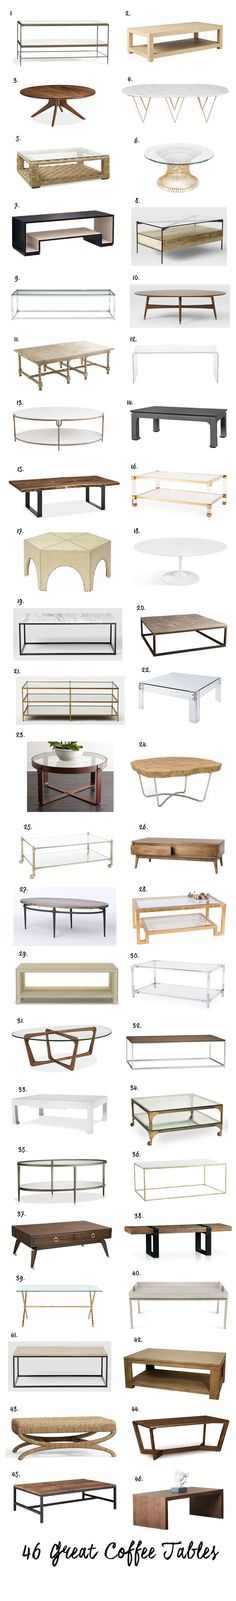 Elements of Style Blog | 46 Great Coffee Tables | http://www.elementsofstyleblog.com